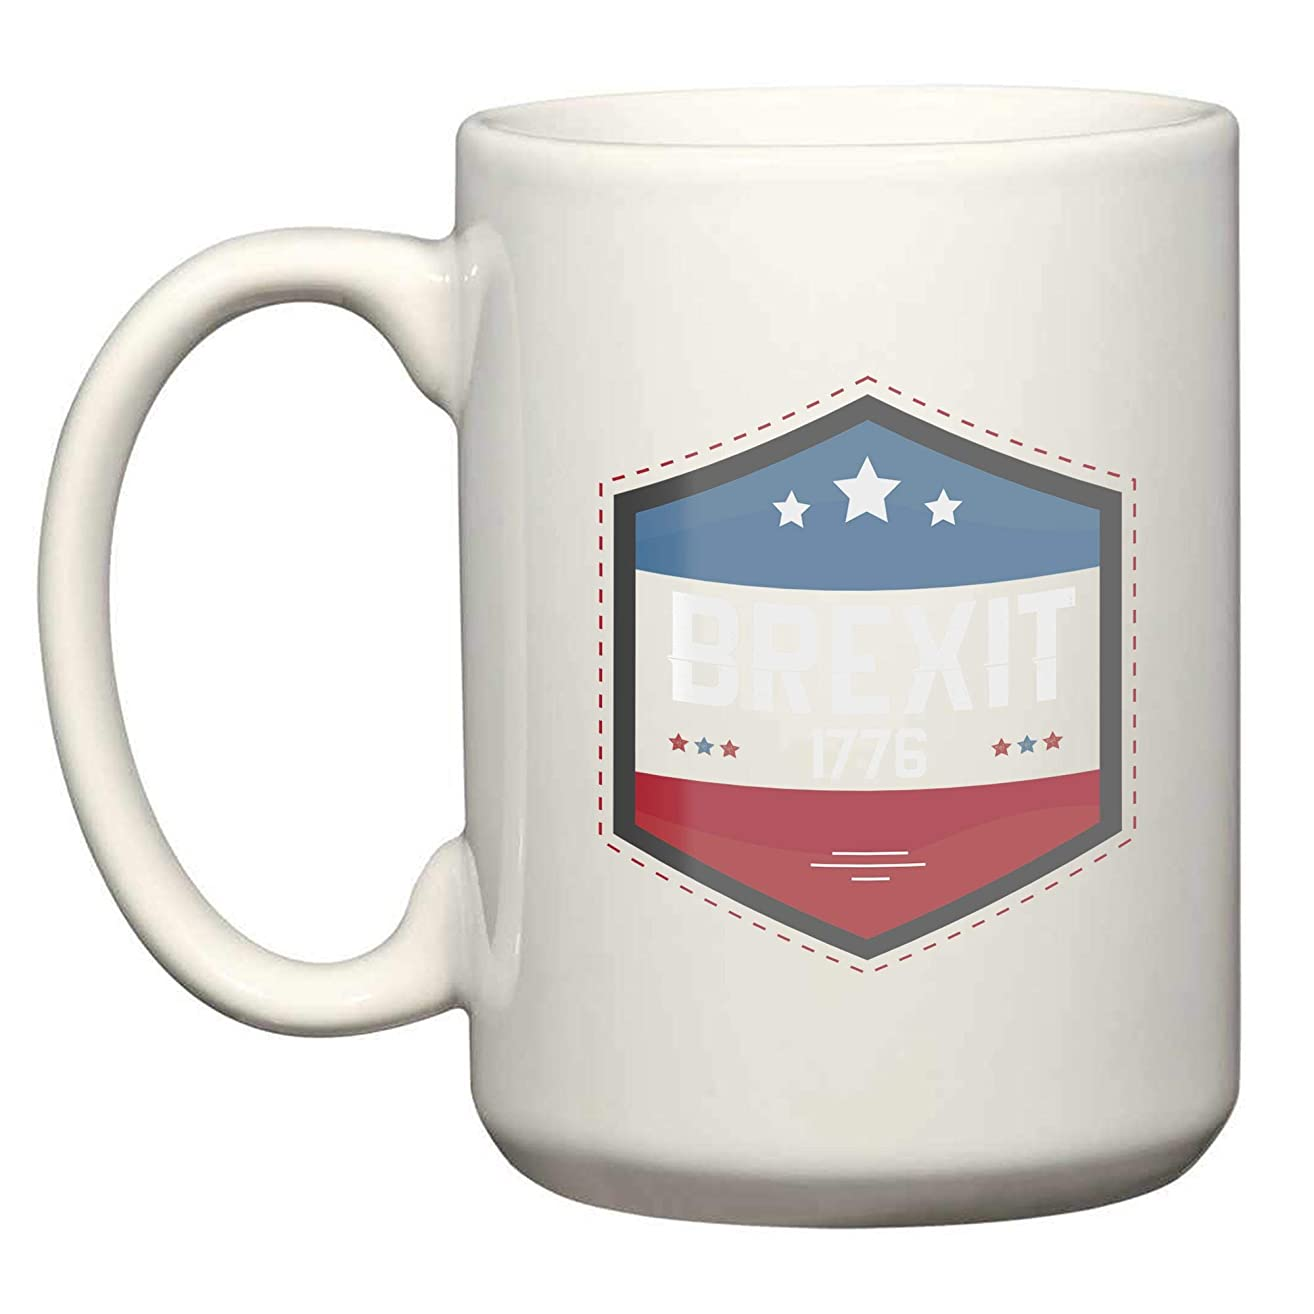 Brexit 1776 July 4Th Shirt Independence Day 15 Oz White Coffee Mugs - Gifts for Independence Day